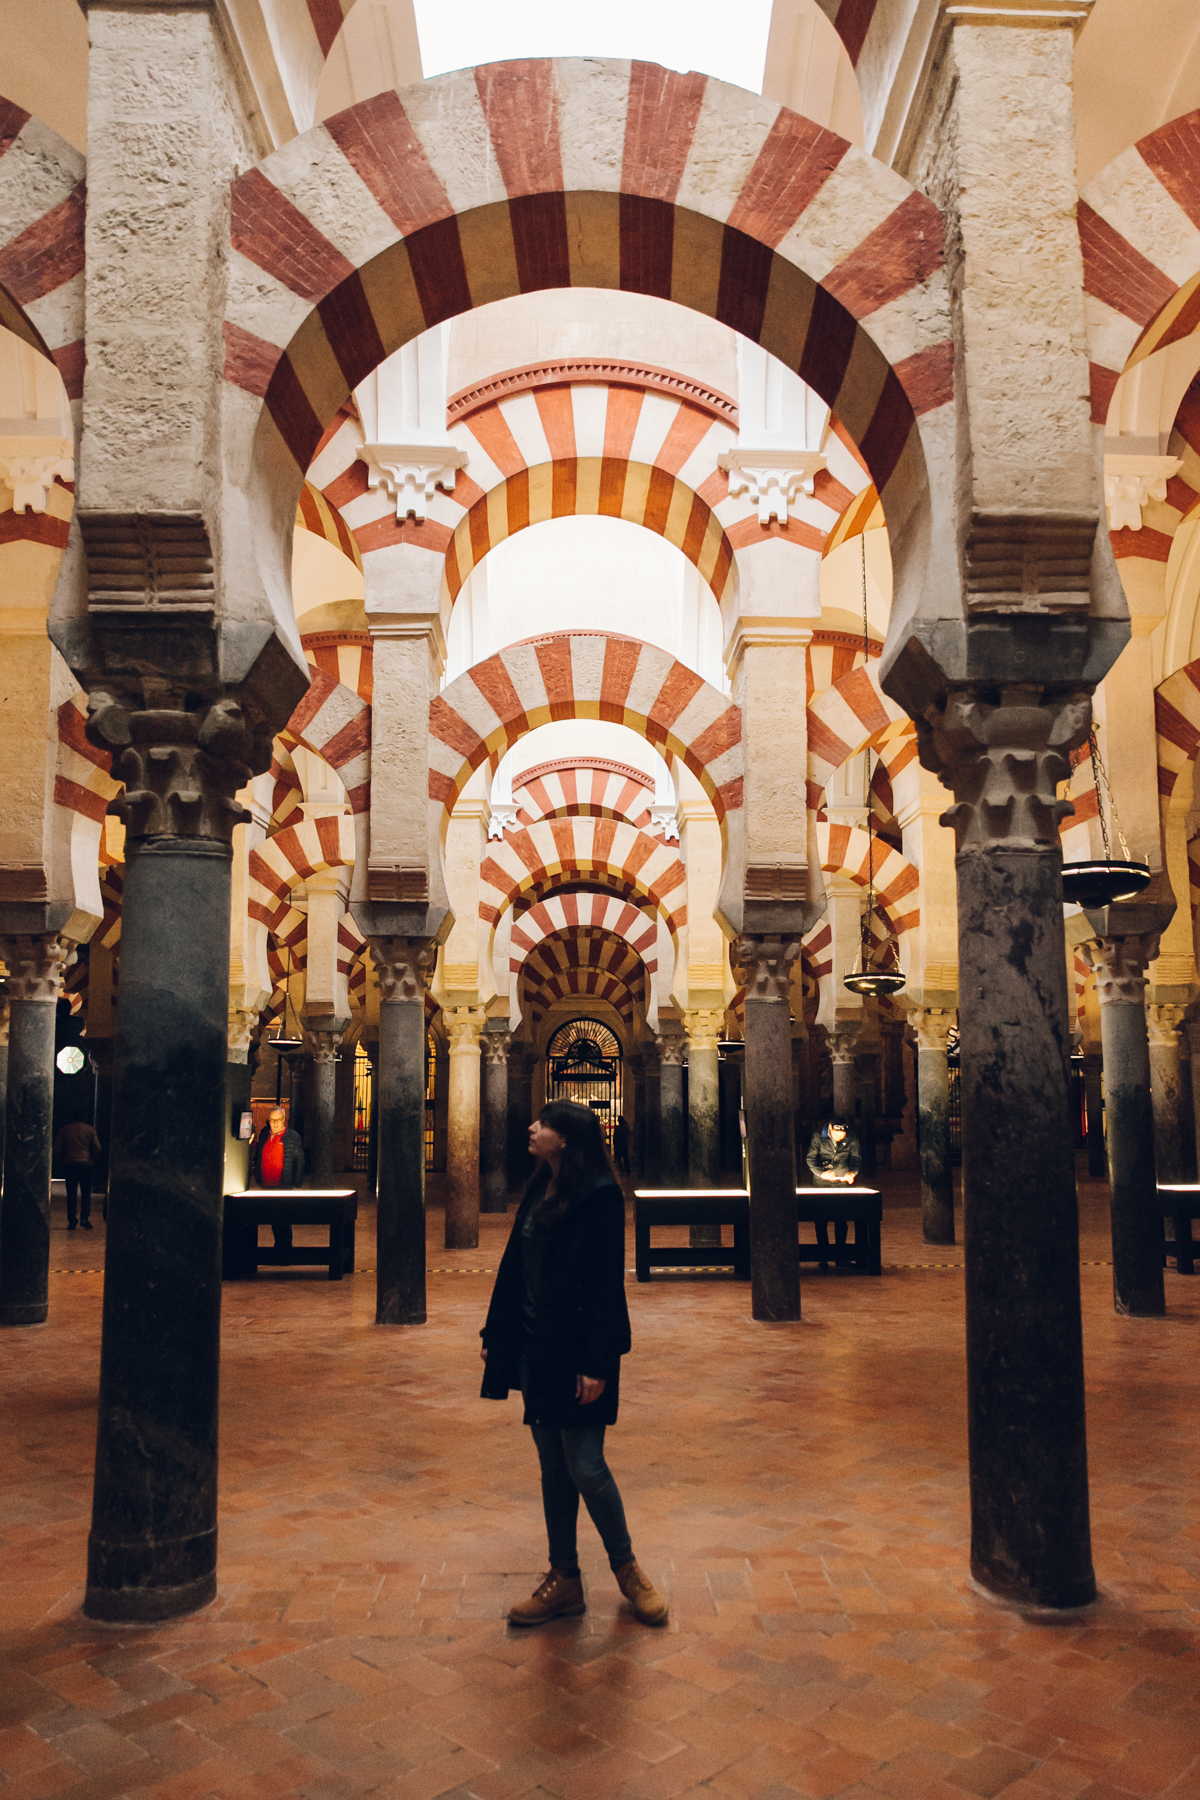 Inside the Mezquita in Cordoba, Andalusia.